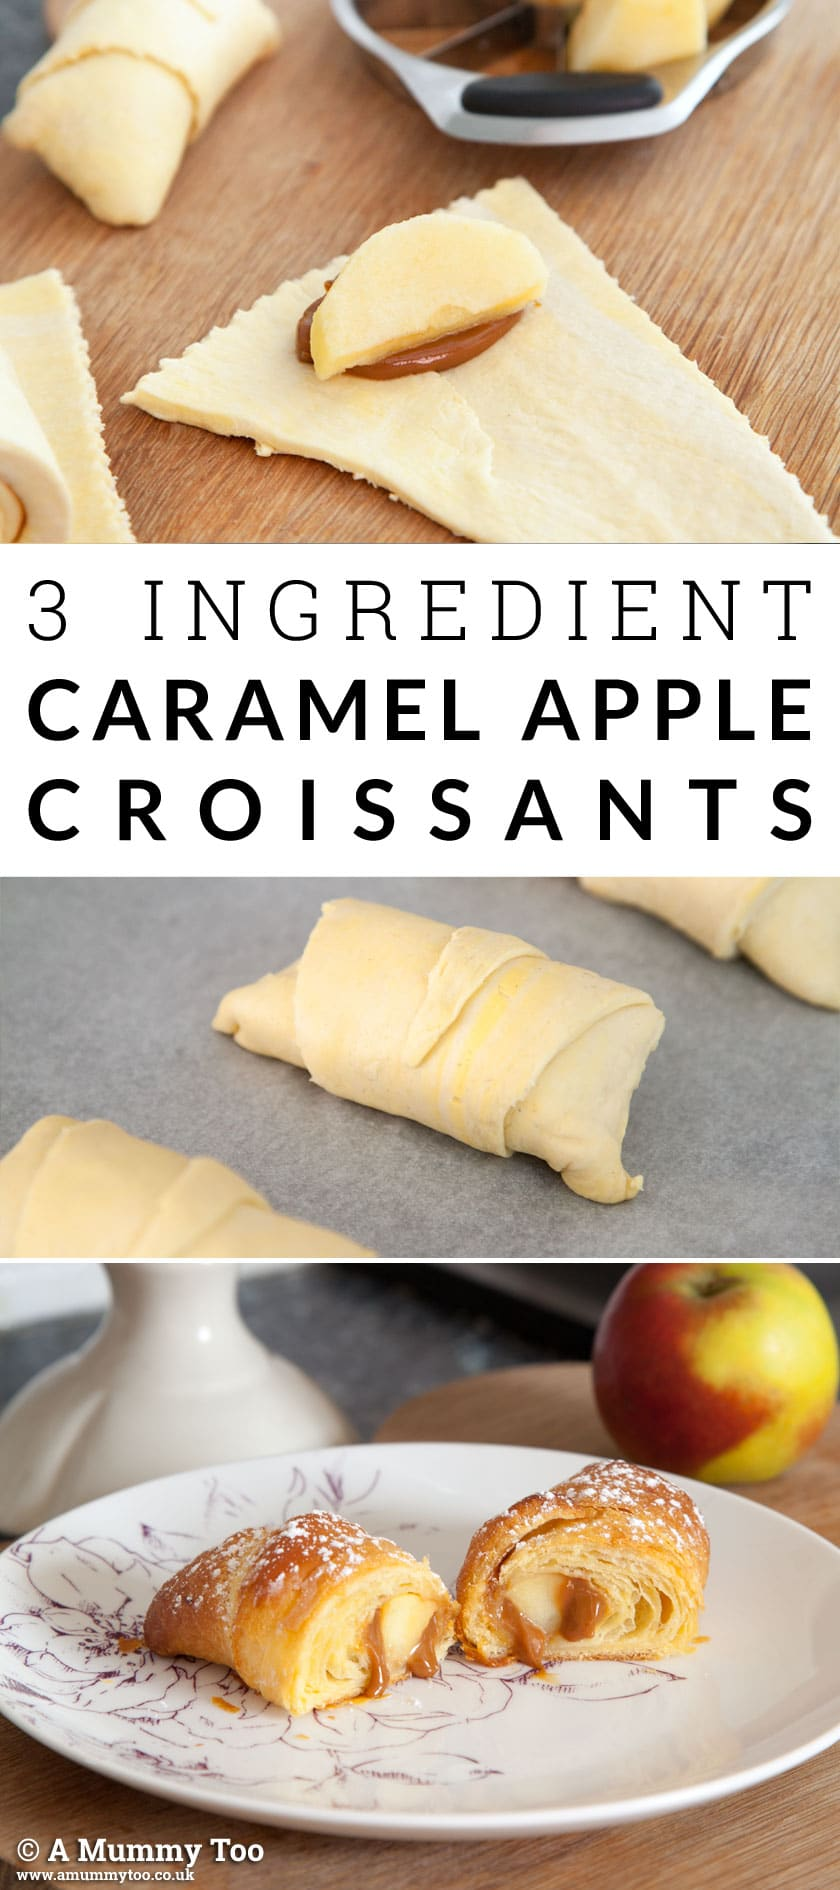 Looking for a breakfast treat? Here's a recipe for three ingredient caramel apple croissants that's quick to make #recipe #breakfast #croissants #foodhack